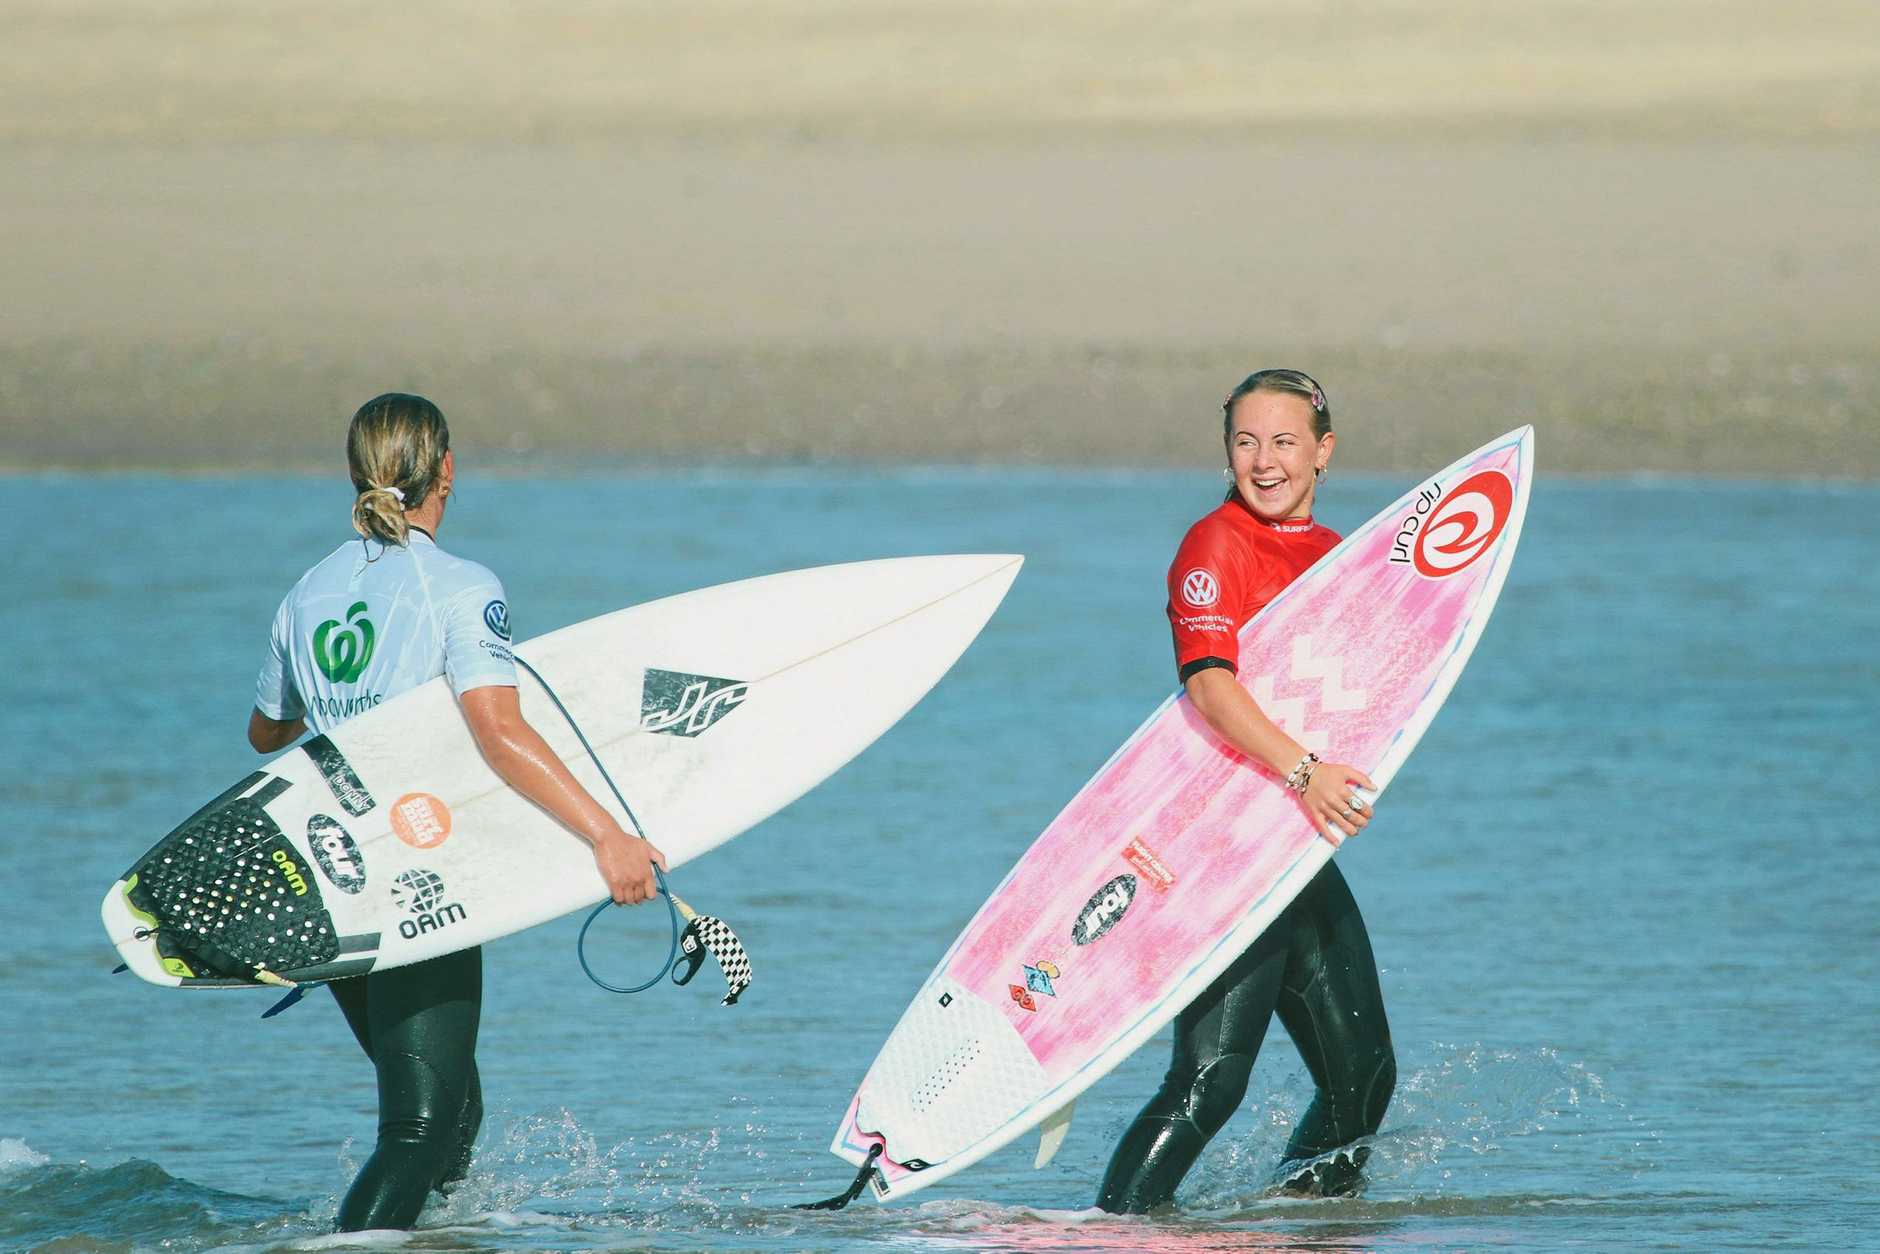 WAVE OF SUCCESS: Lennox Head surfer Nyxie Ryan is a professional on the 2019 Women's Junior Tour.and she will compete in the 2019 World Junior Championships at Huntington Beach, California, from October 26 to November 3.